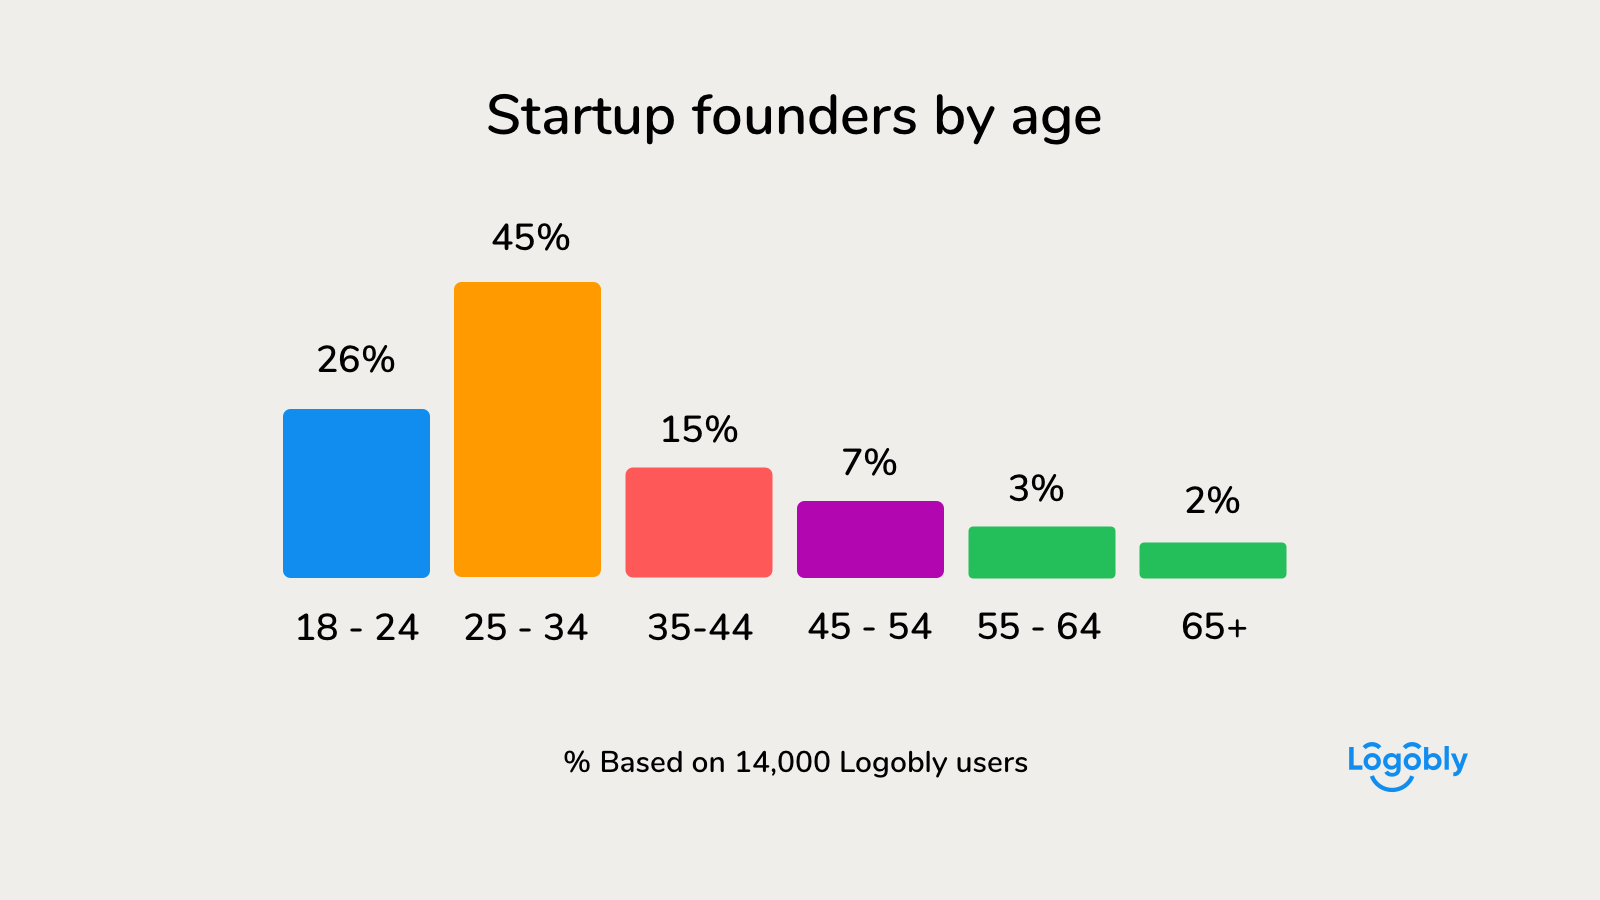 Startup founders by age